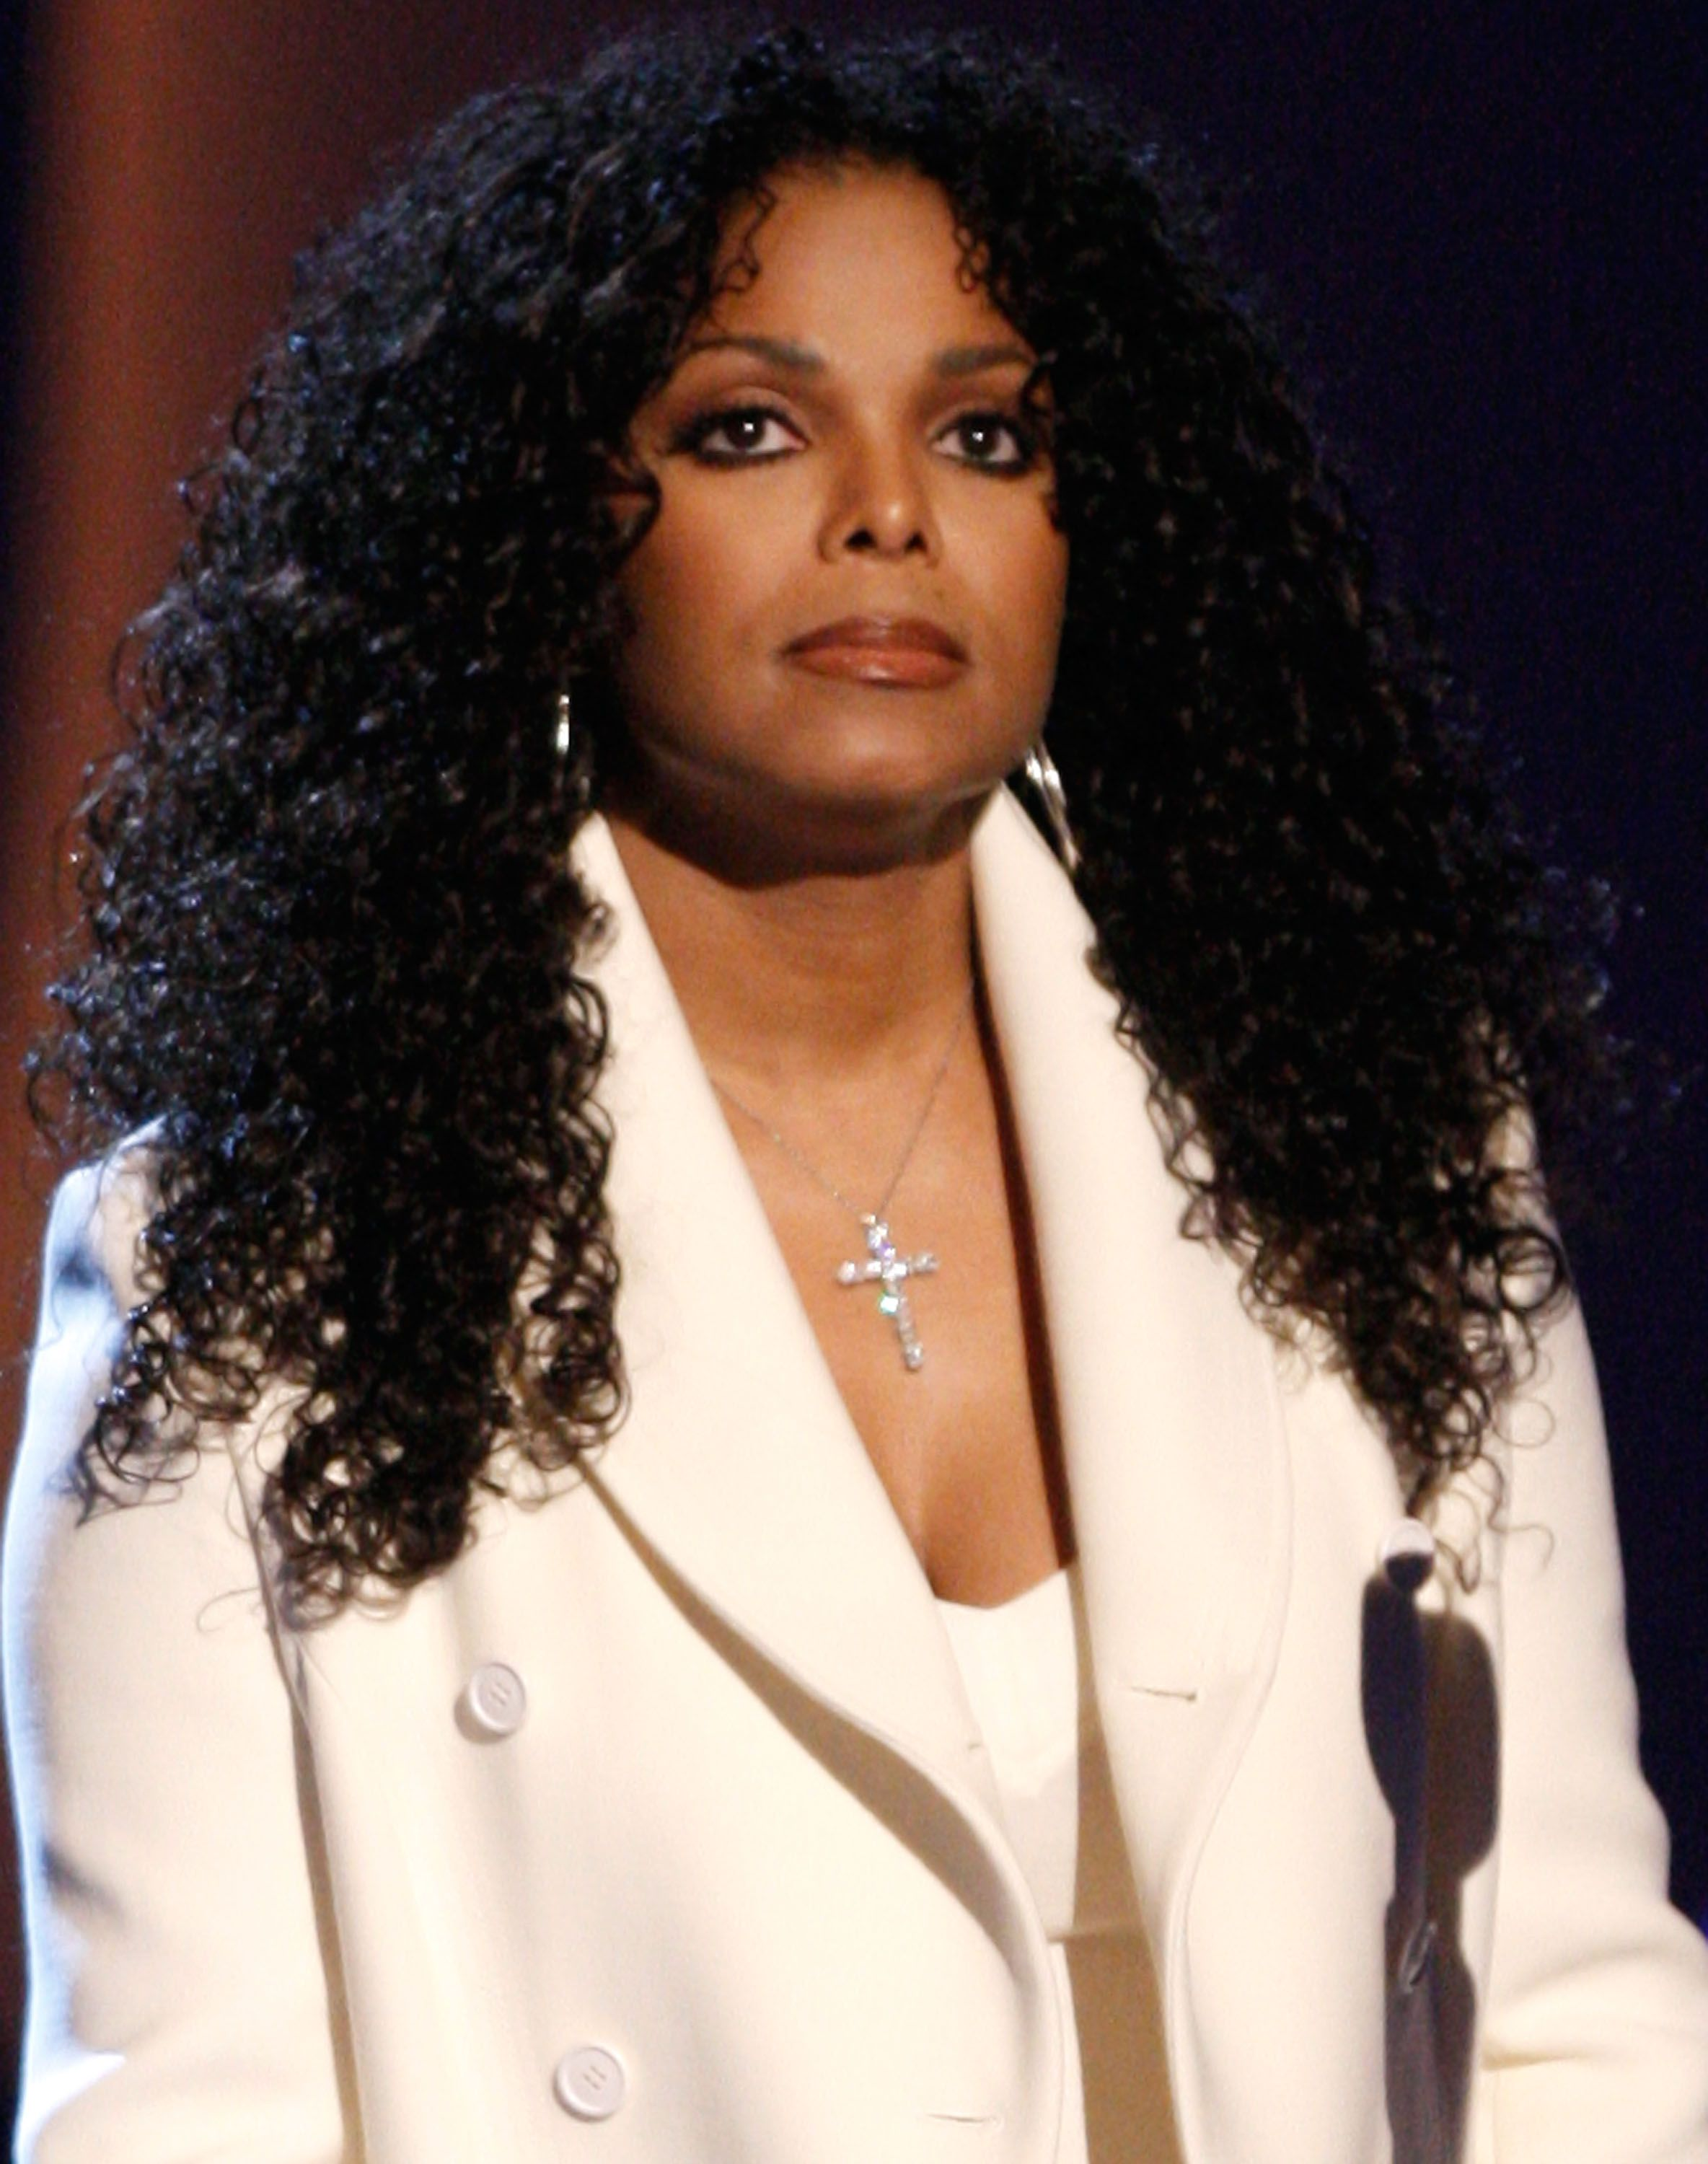 Janet Jackson at the 2009 BET Awards held at the Shrine Auditorium on June 28, 2009 in Los Angeles, California. | Source: Getty Images